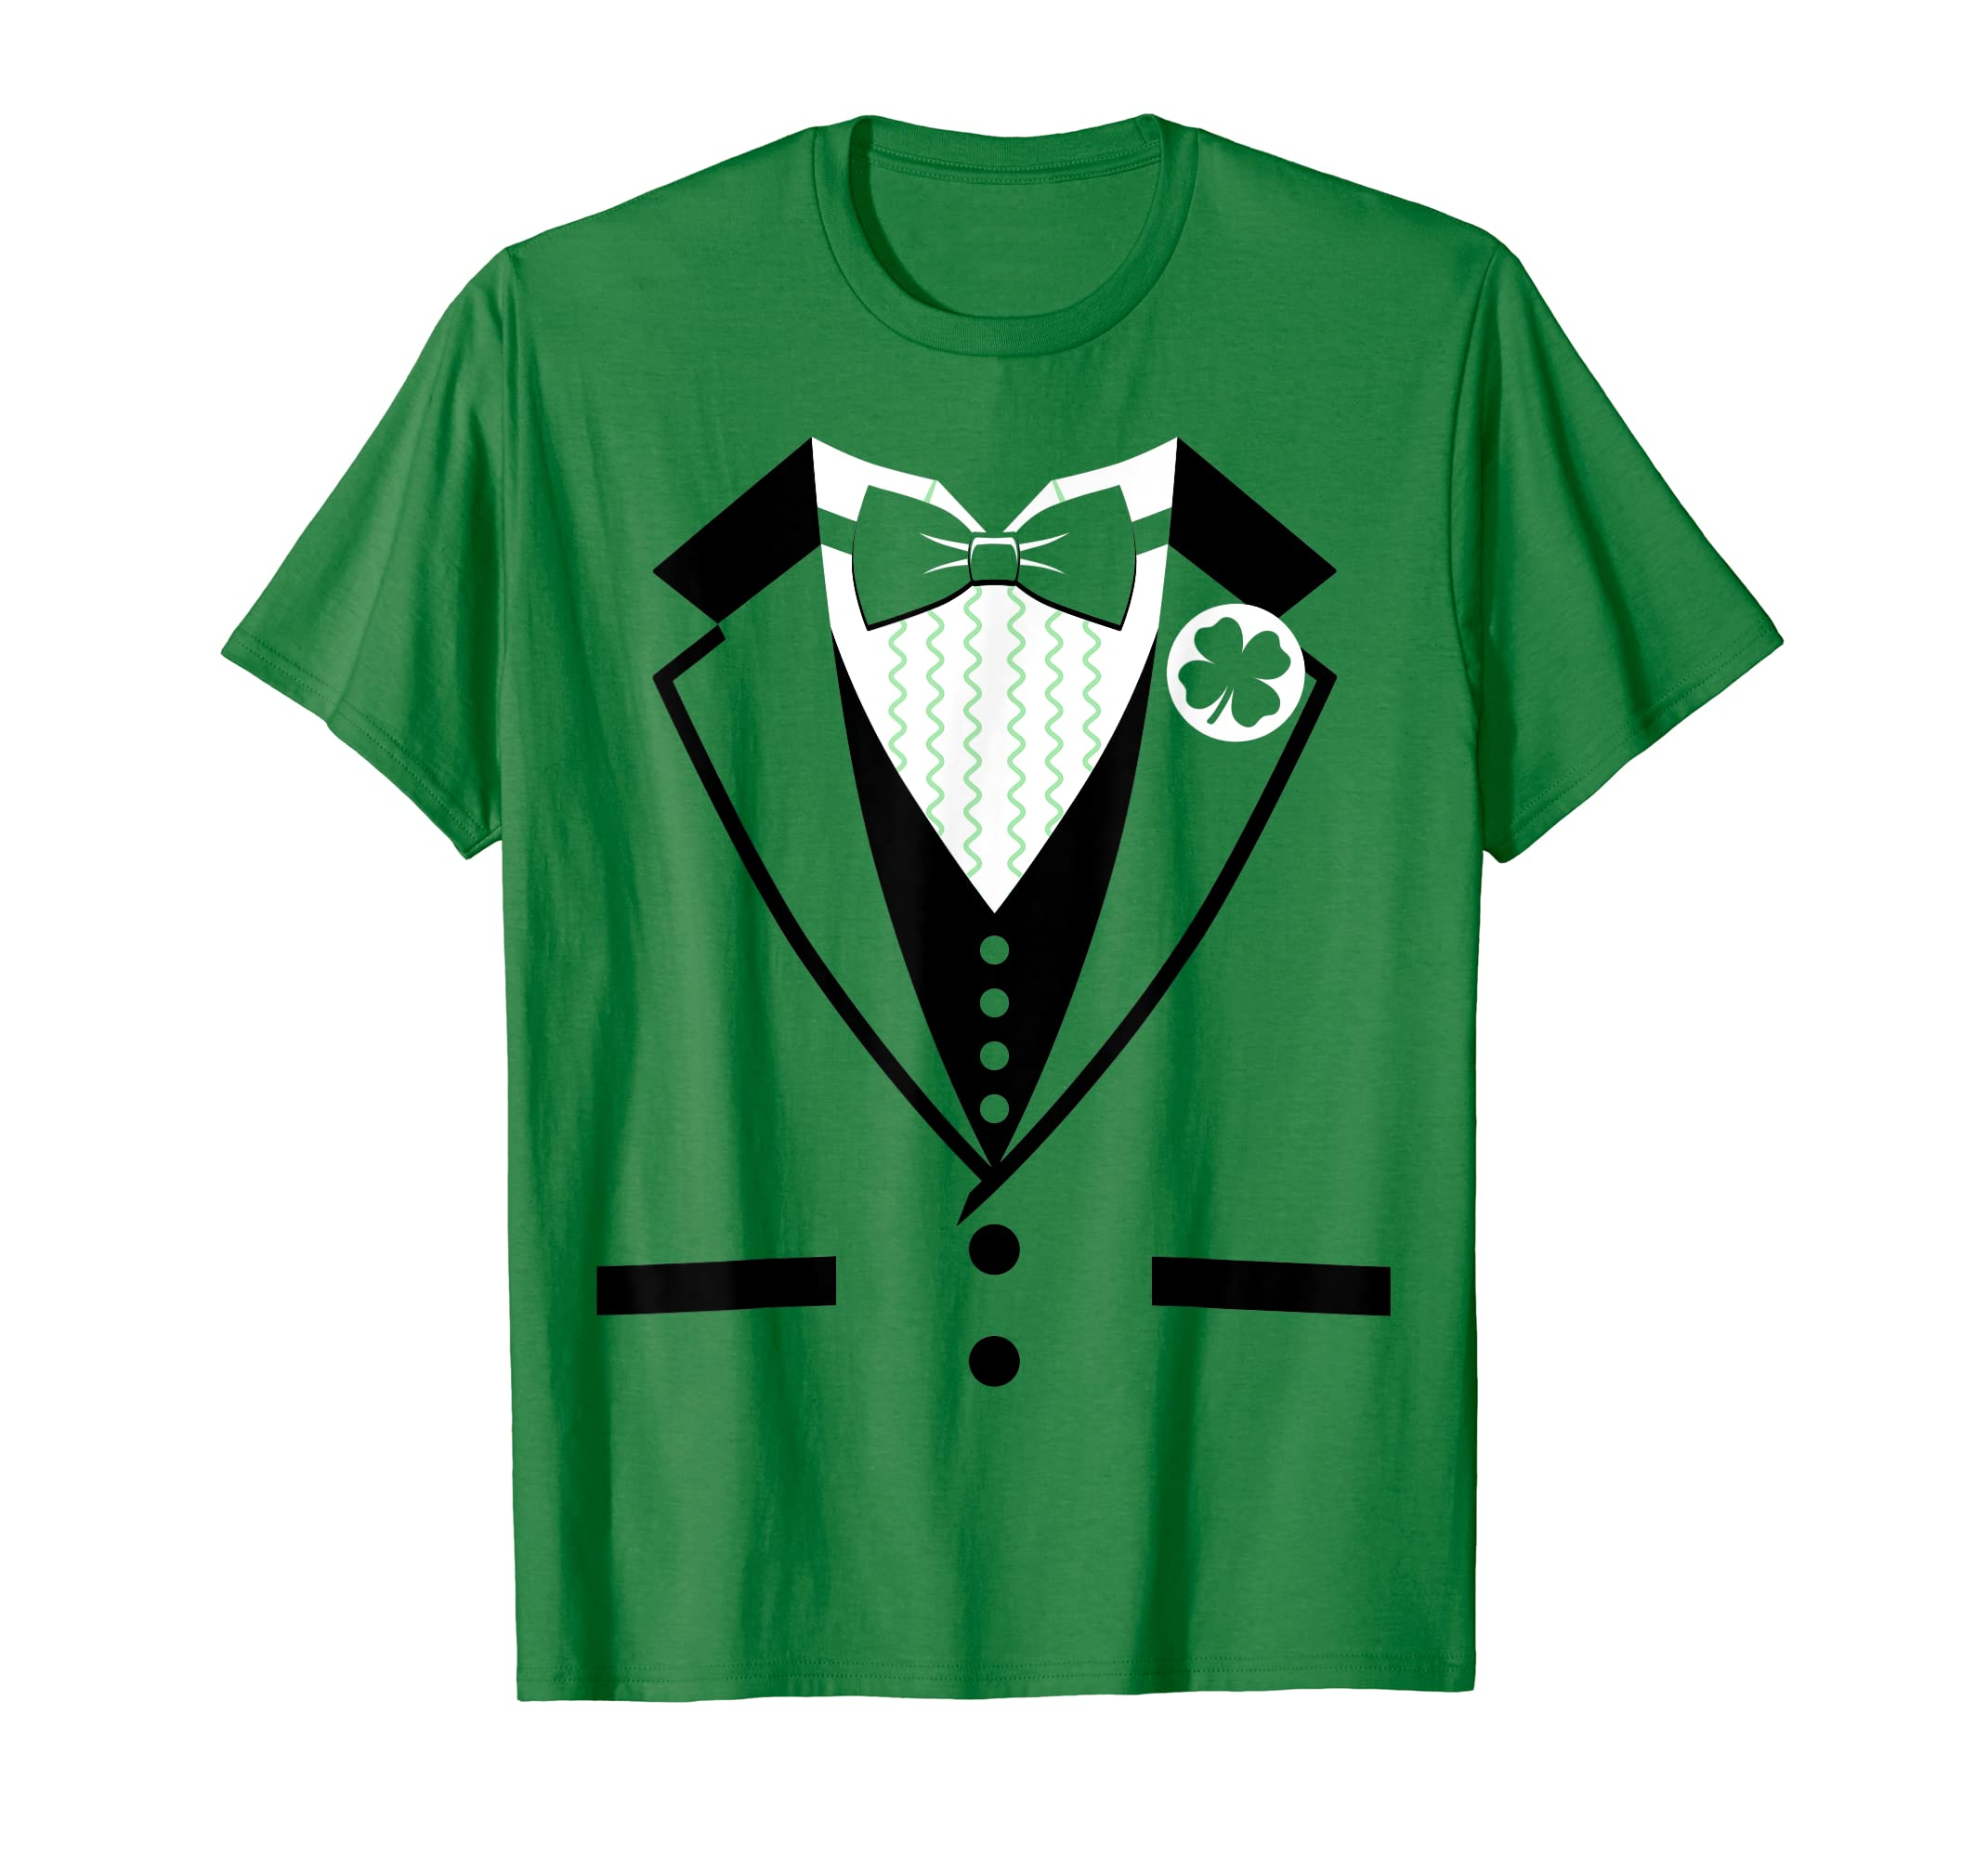 27cec476 Amazon.com: Leprechaun Costume Tuxedo St. Patrick's Day T-shirt: Clothing